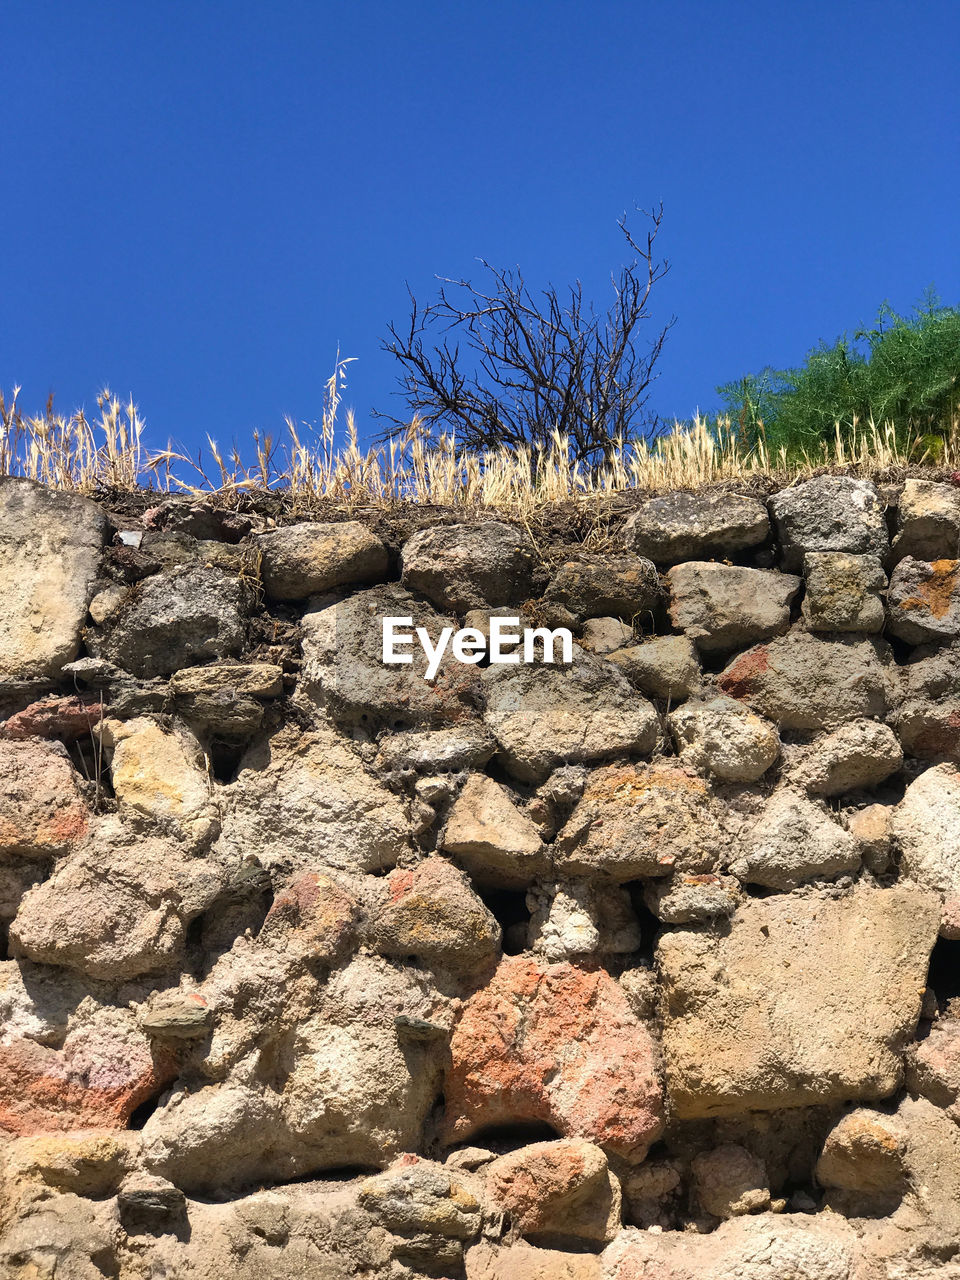 sky, blue, nature, clear sky, day, solid, no people, rock, plant, rock - object, tree, sunlight, tranquility, outdoors, non-urban scene, tranquil scene, copy space, textured, landscape, low angle view, stone wall